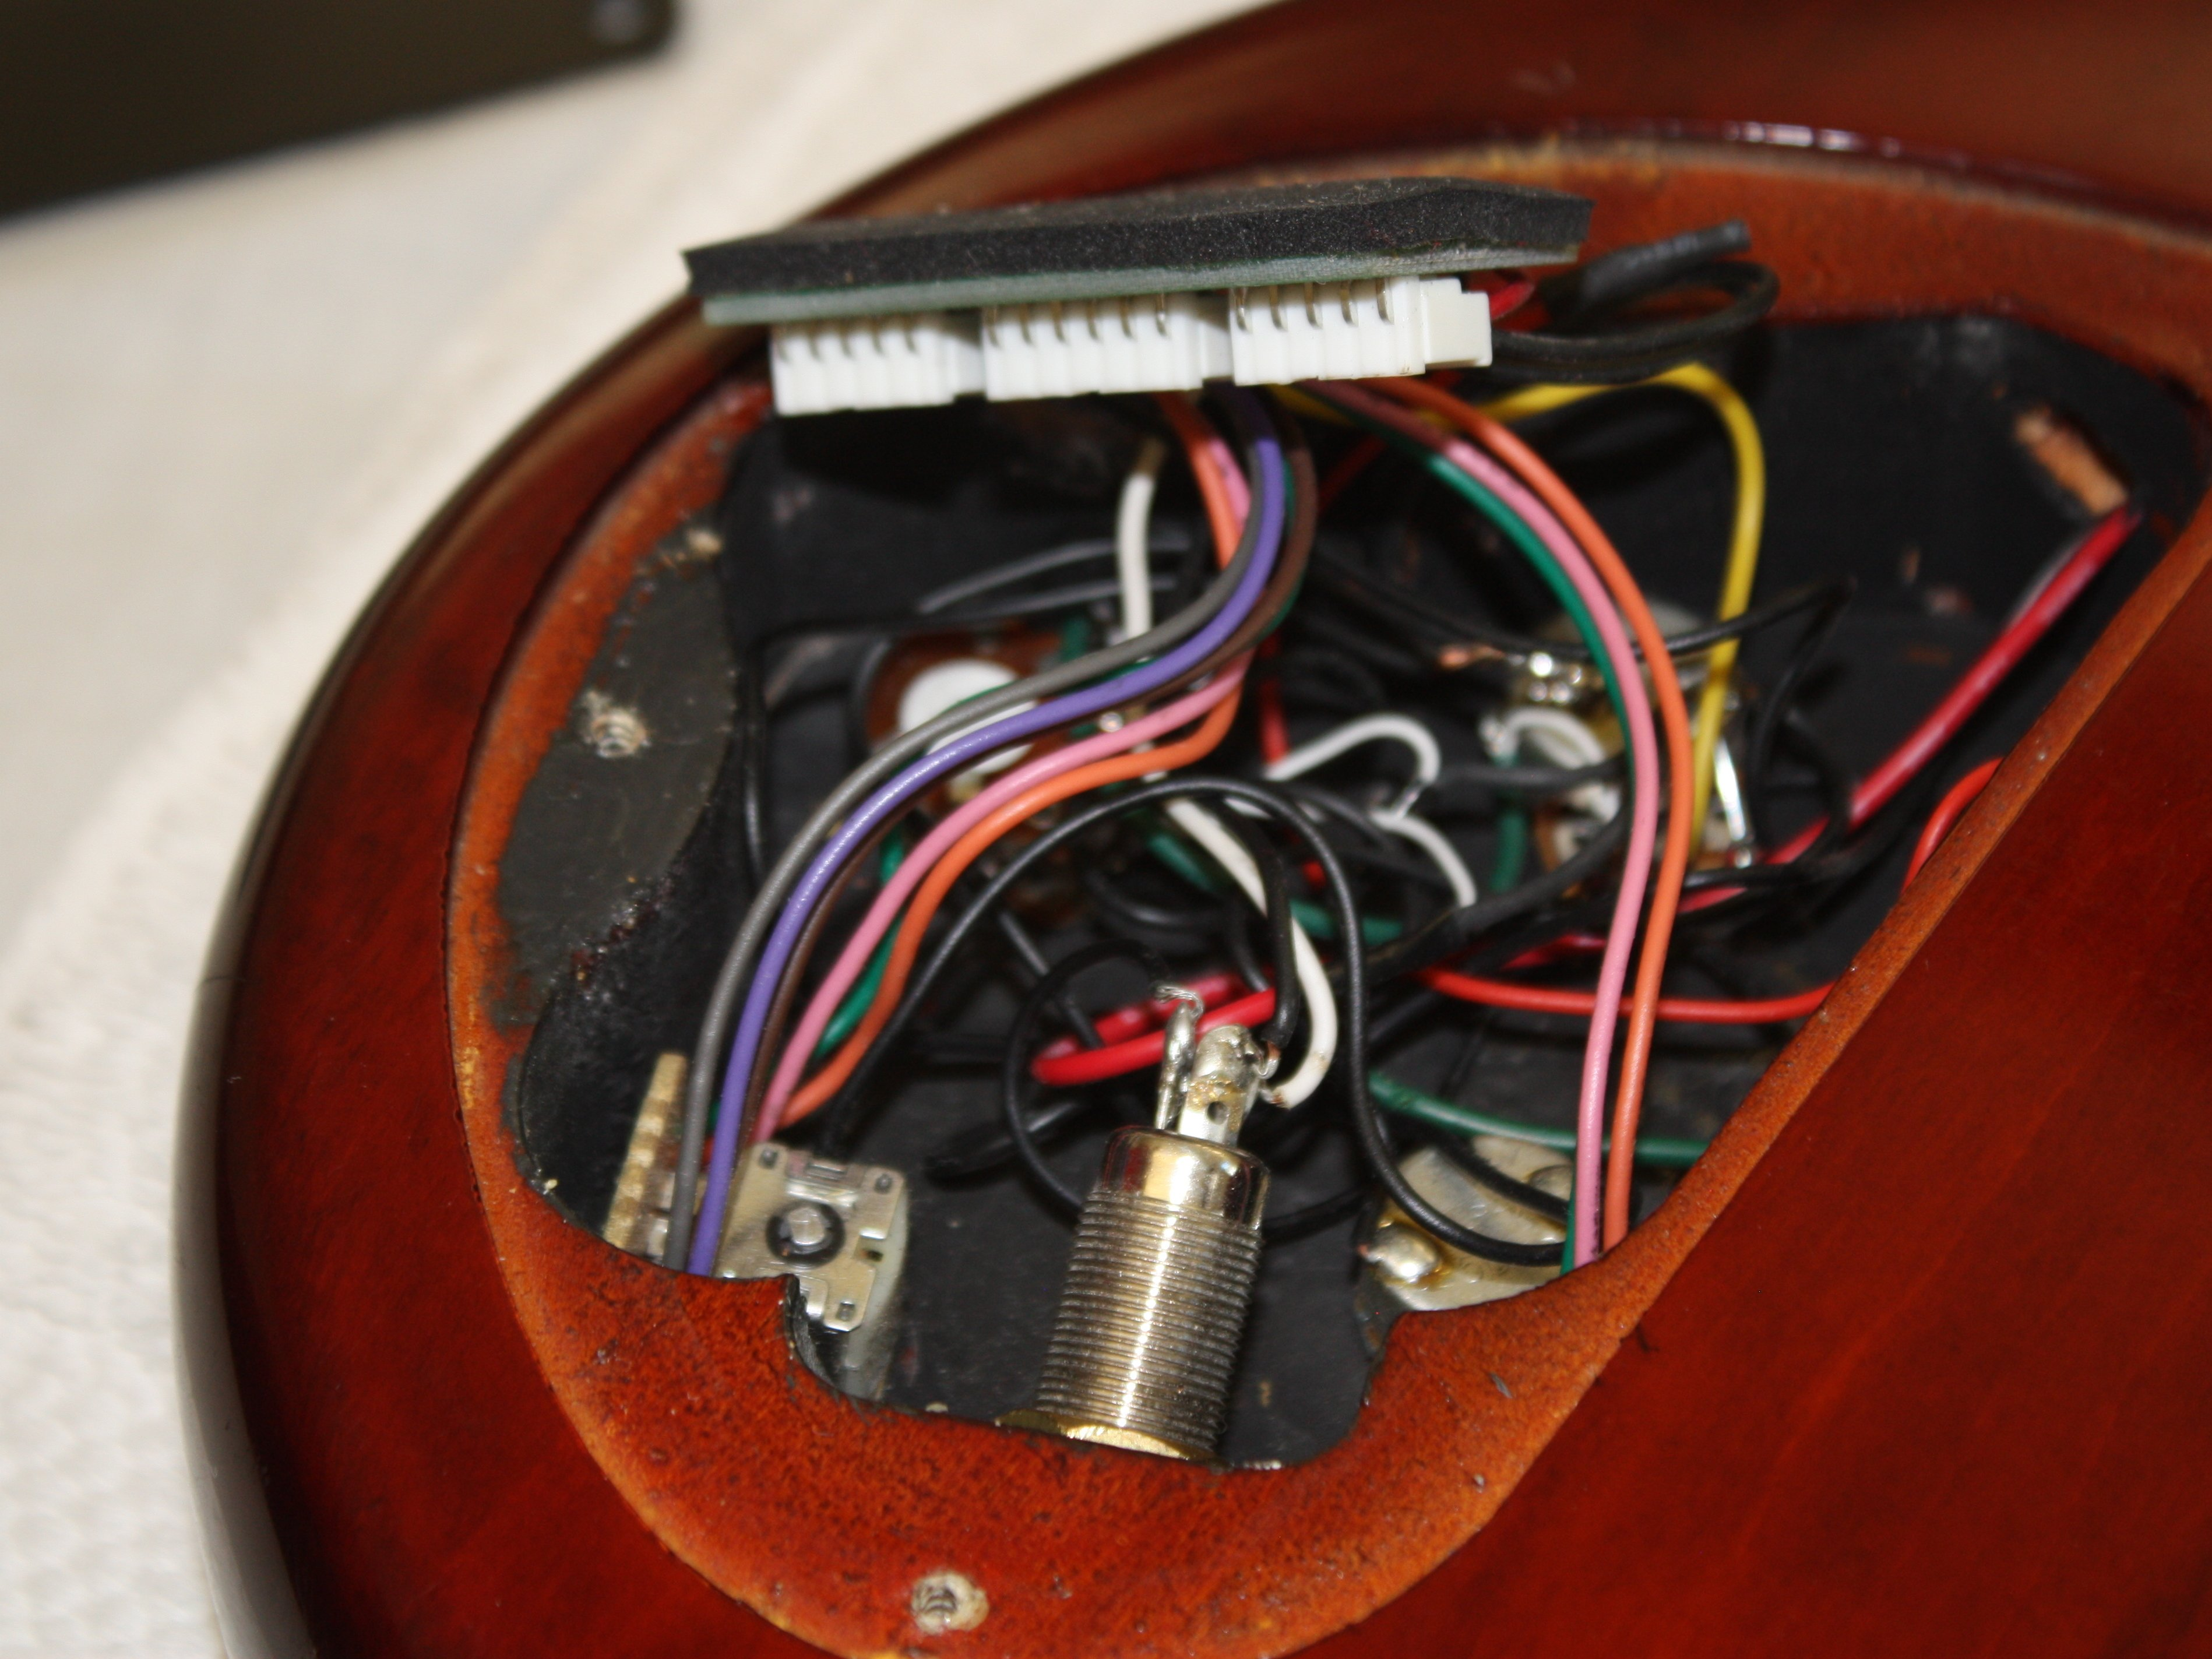 ibanez 5 string bass model sr405qm output jack replacement ifixit Microphone Wiring ibanez 5 string bass model sr405qm output jack replacement